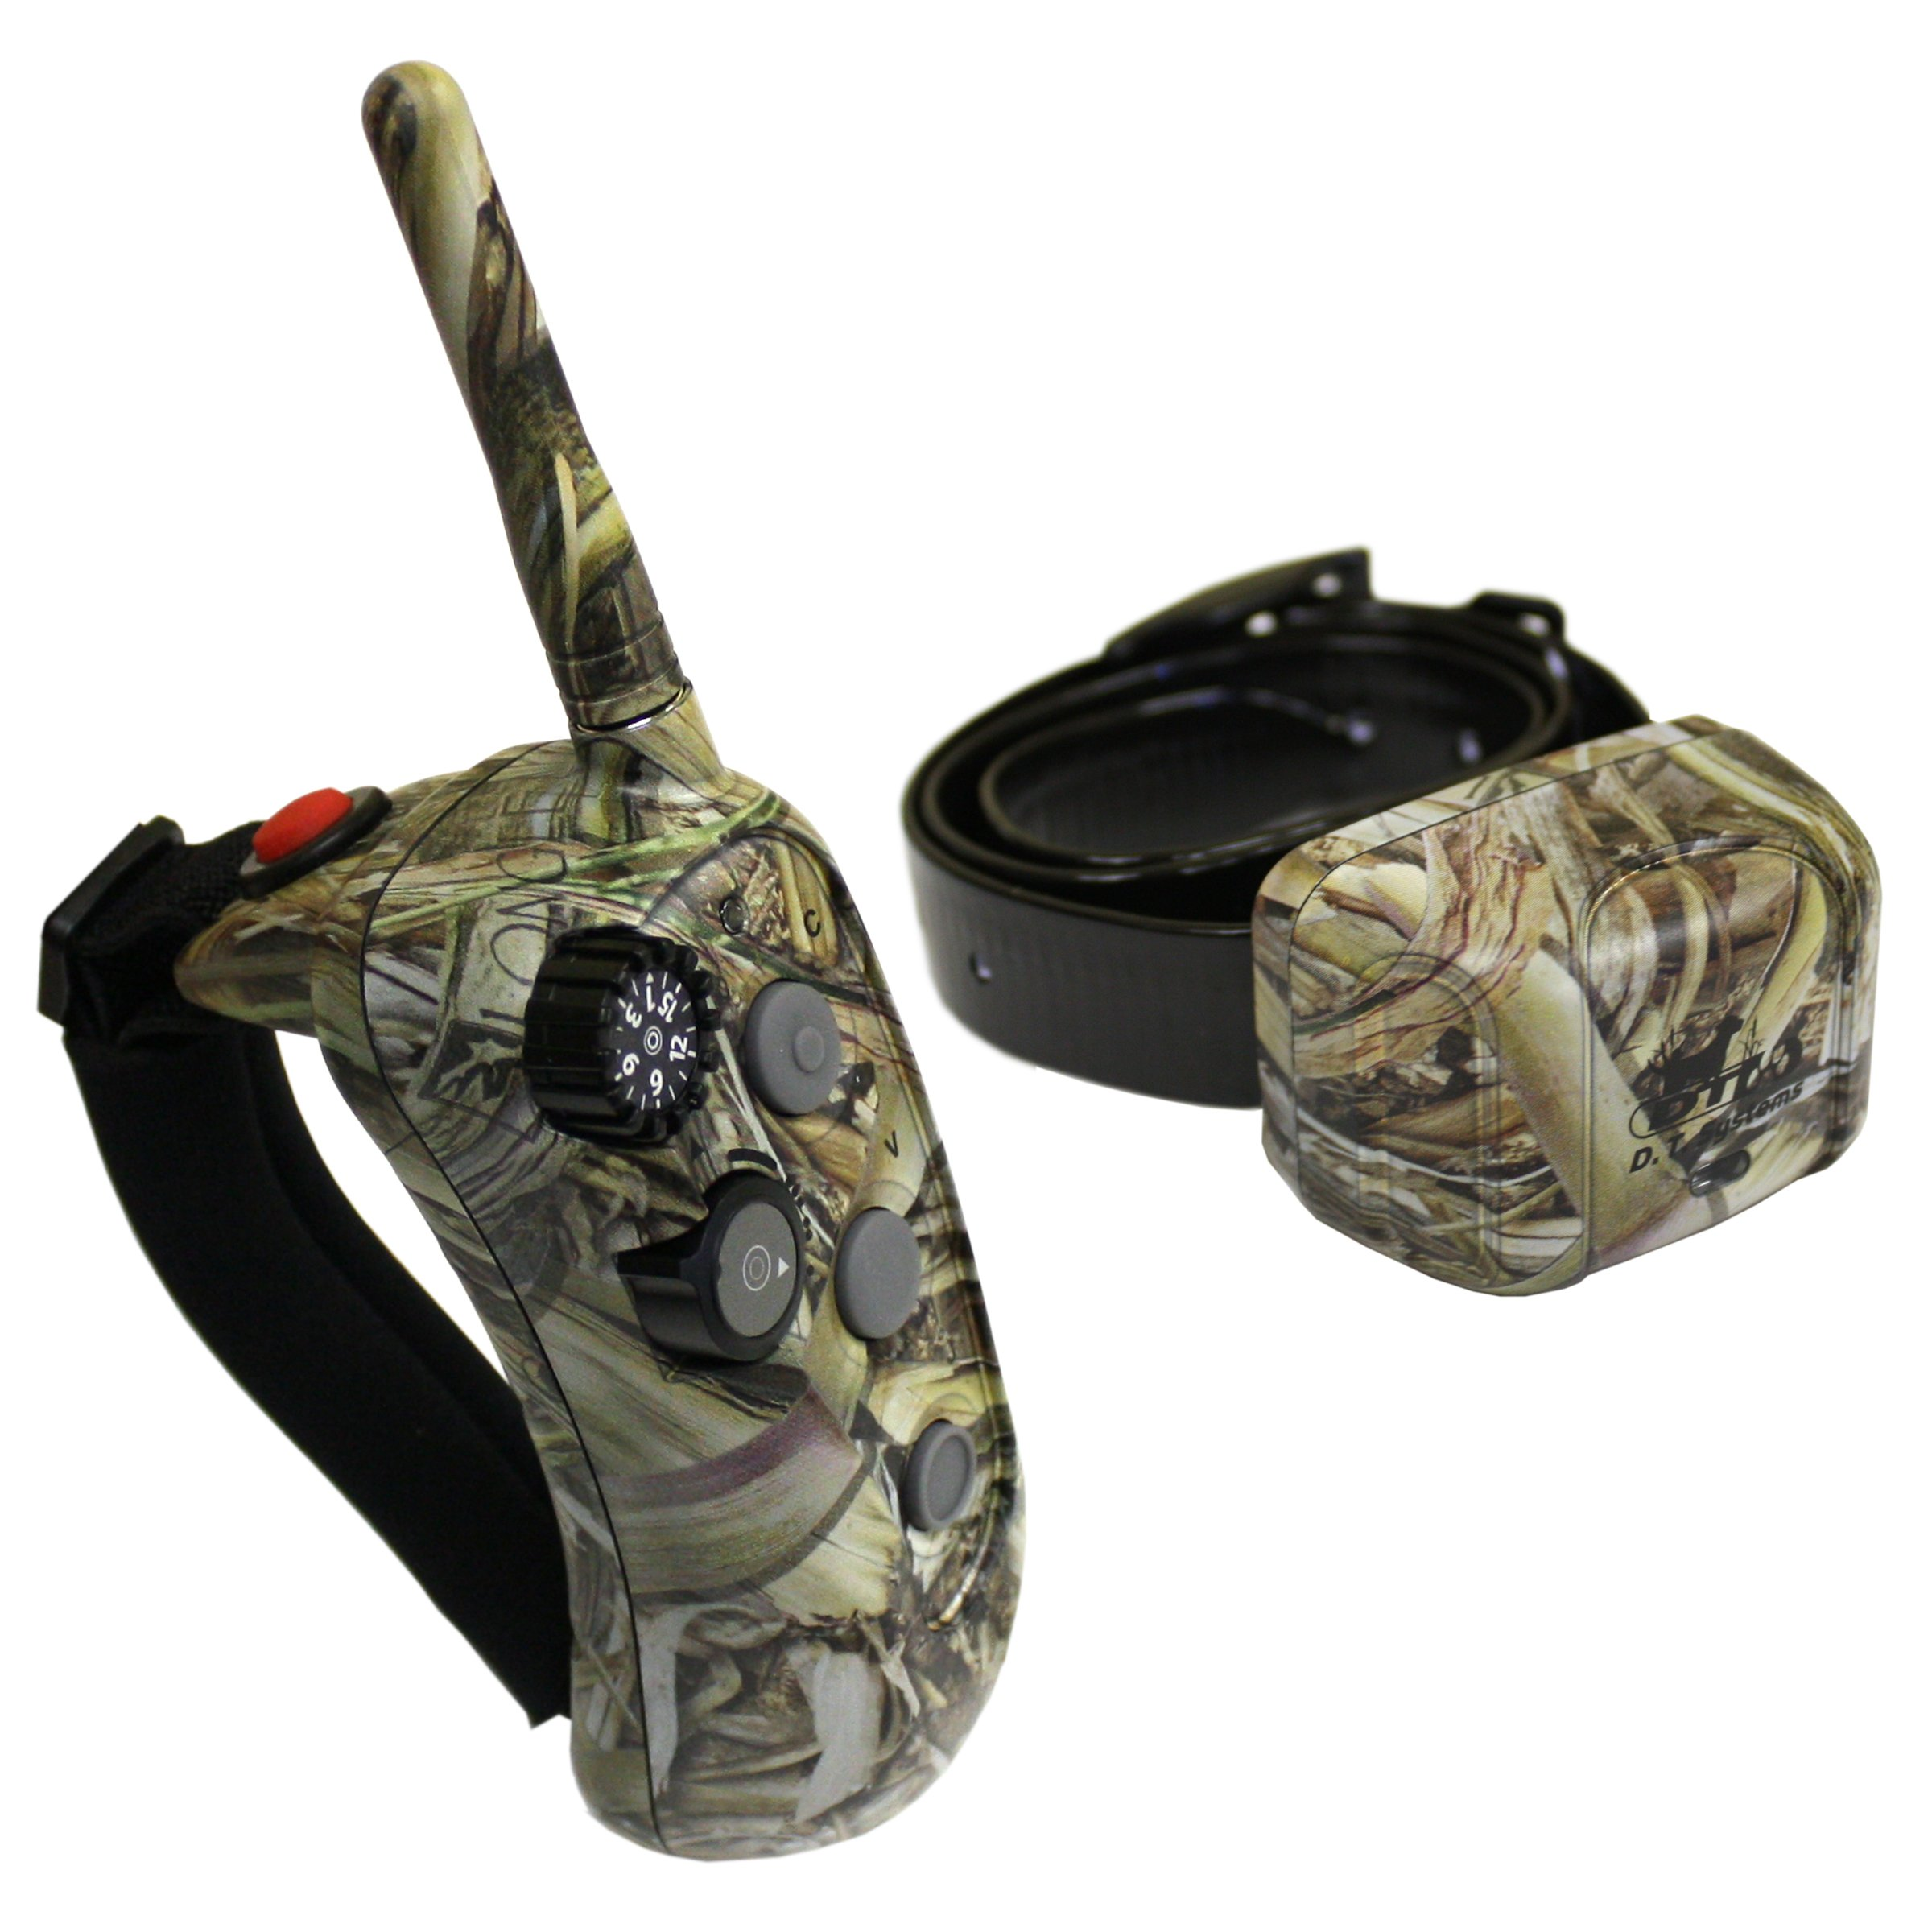 DT Systems Rapid Access Pro Trainer in Camo by DT Systems